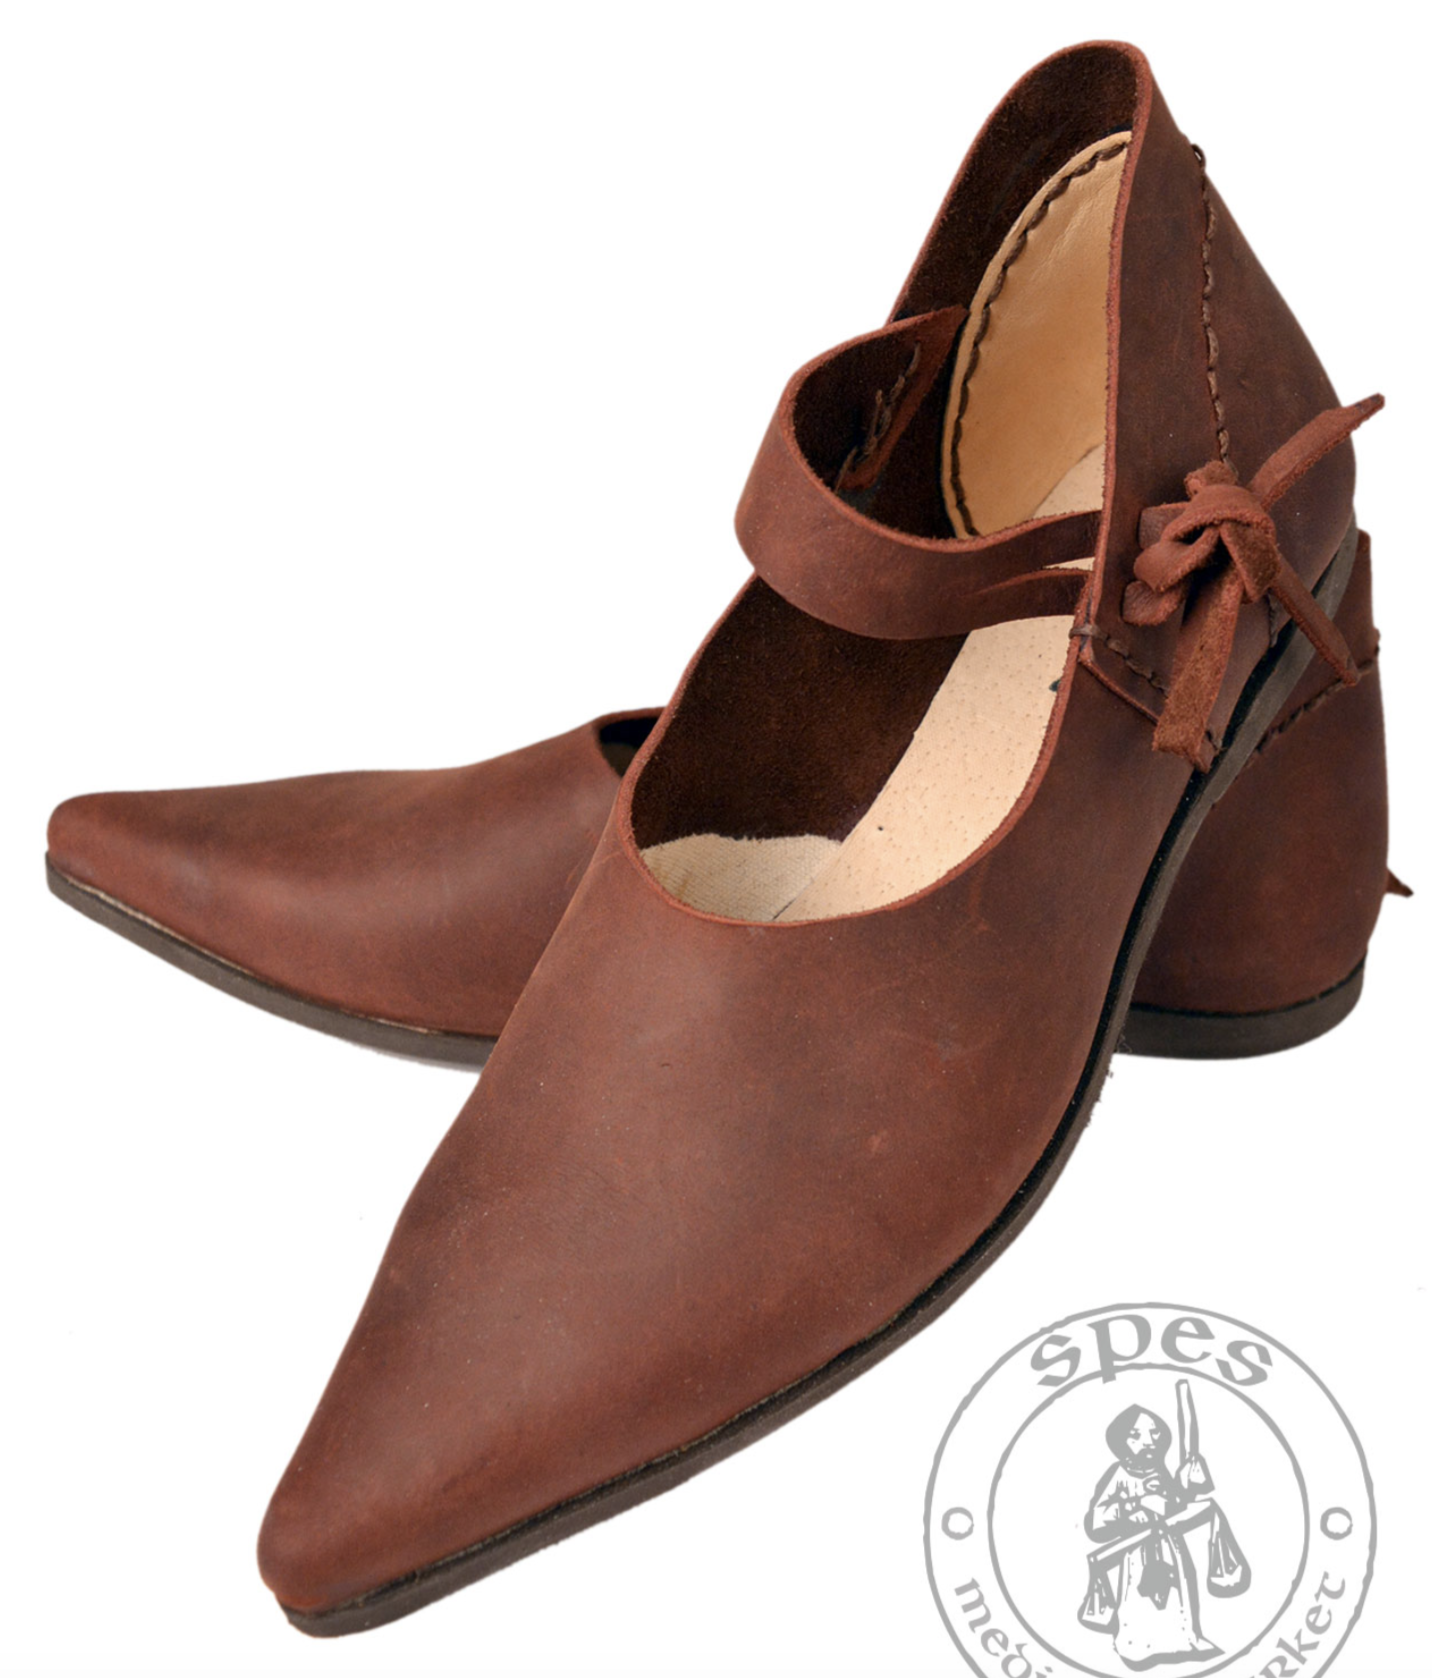 Chaussures Dame : KSS1435 - 110 €